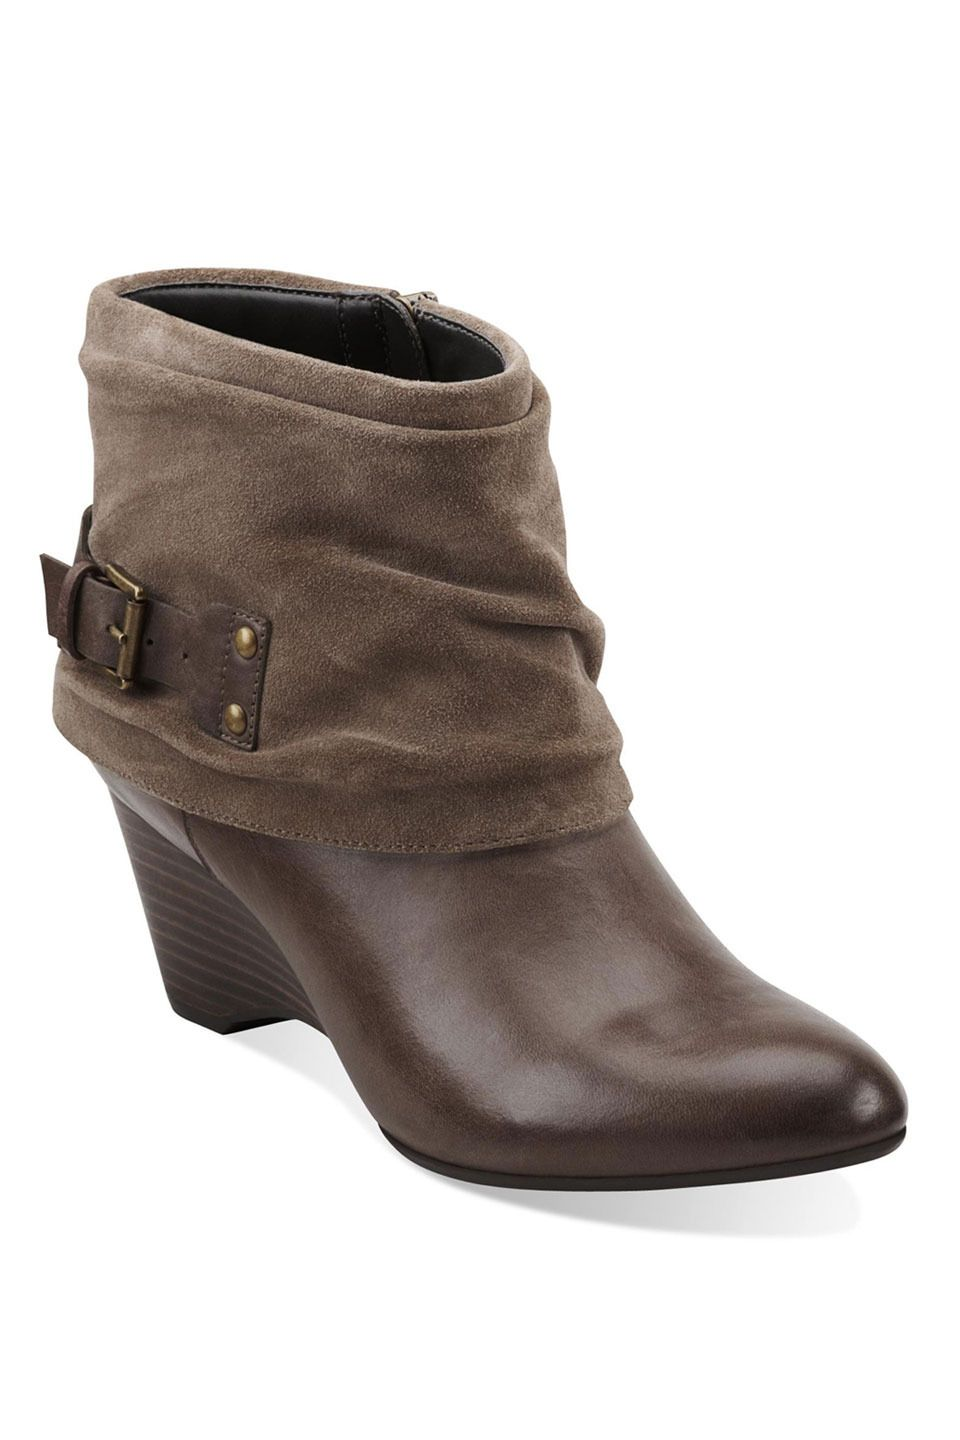 Clarks Trolley Twirl Bootie In Gray Leather - Beyond the Rack